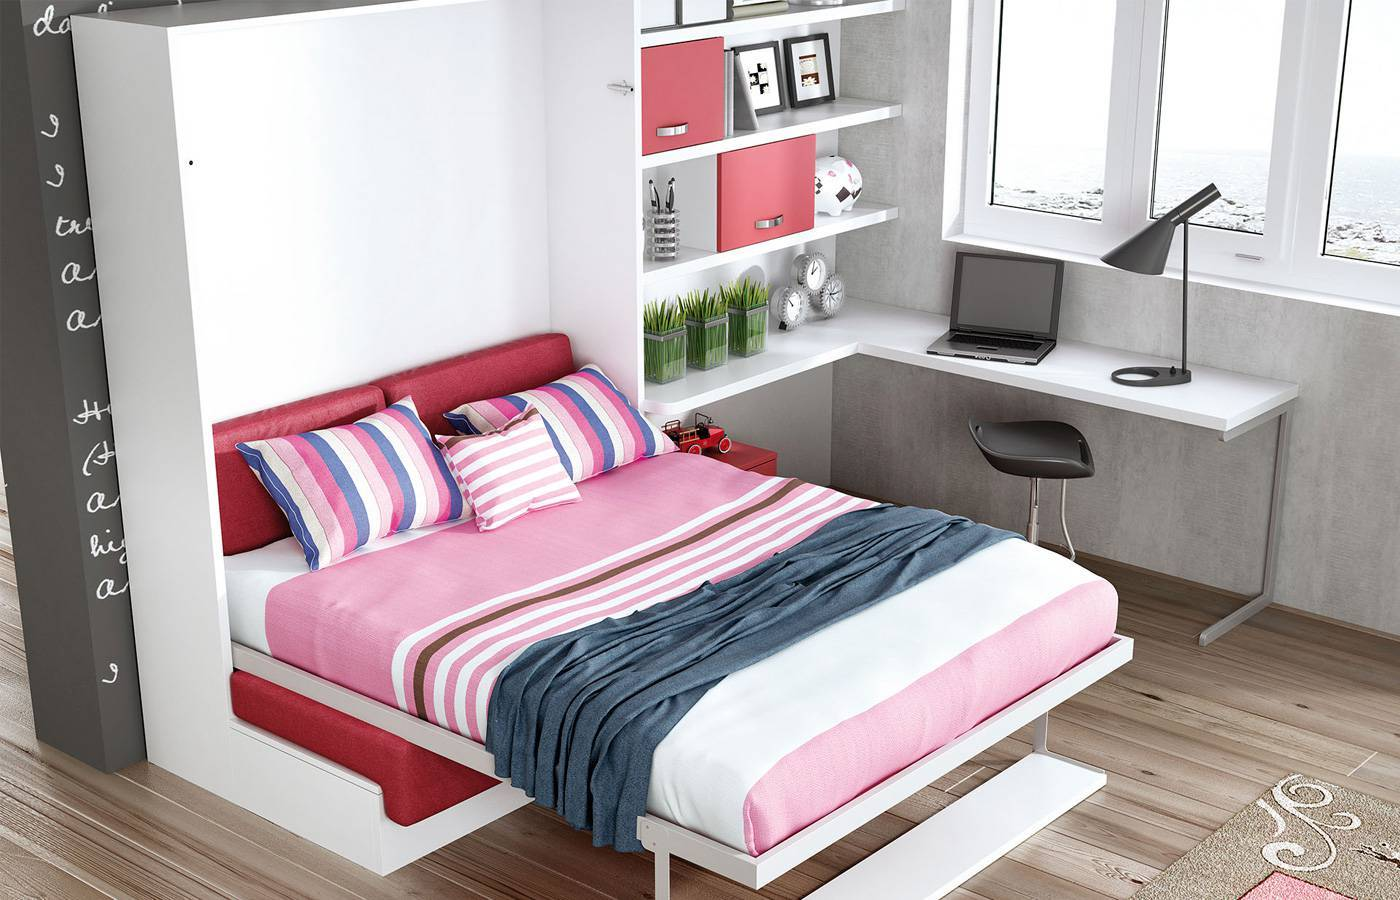 Habitaci n juvenil con cama abatible solution 17 dismobel Cama juvenil abatible